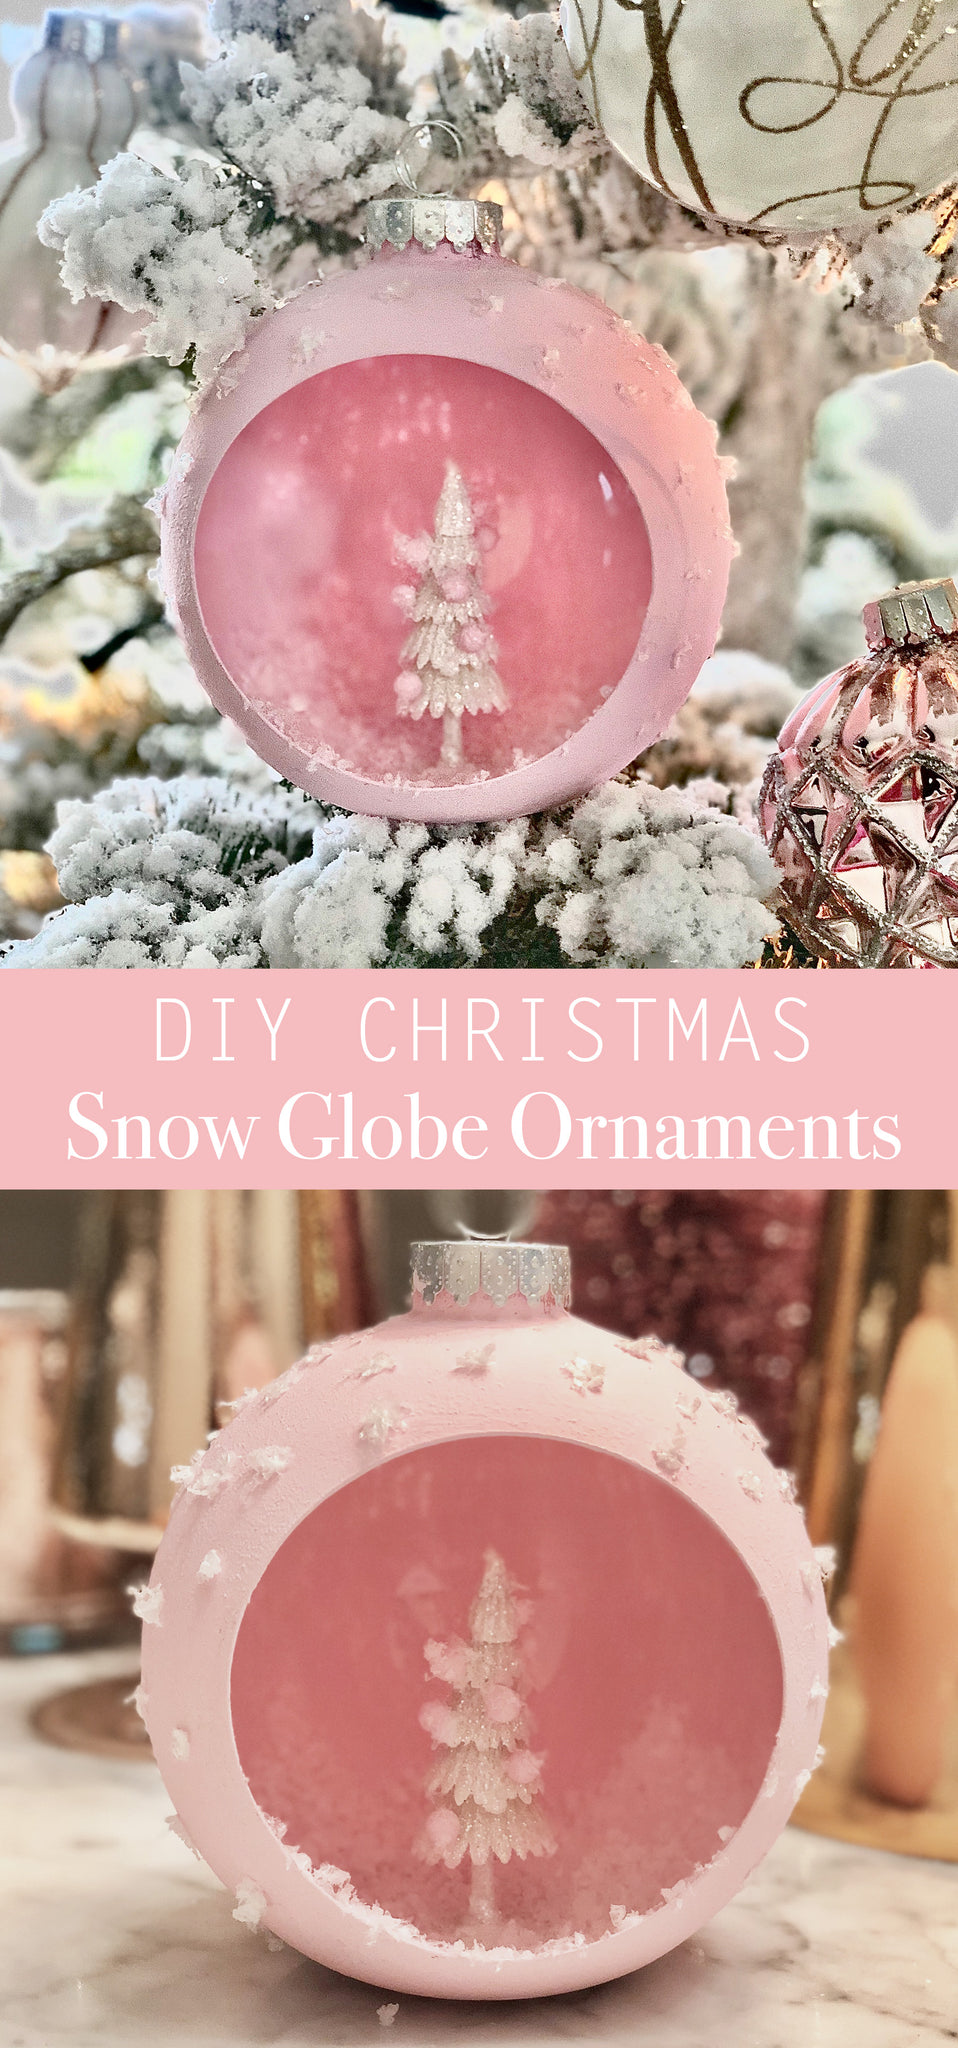 DIY Christmas Snow Globe Ornaments - Holiday Crafts - Pretty Collected